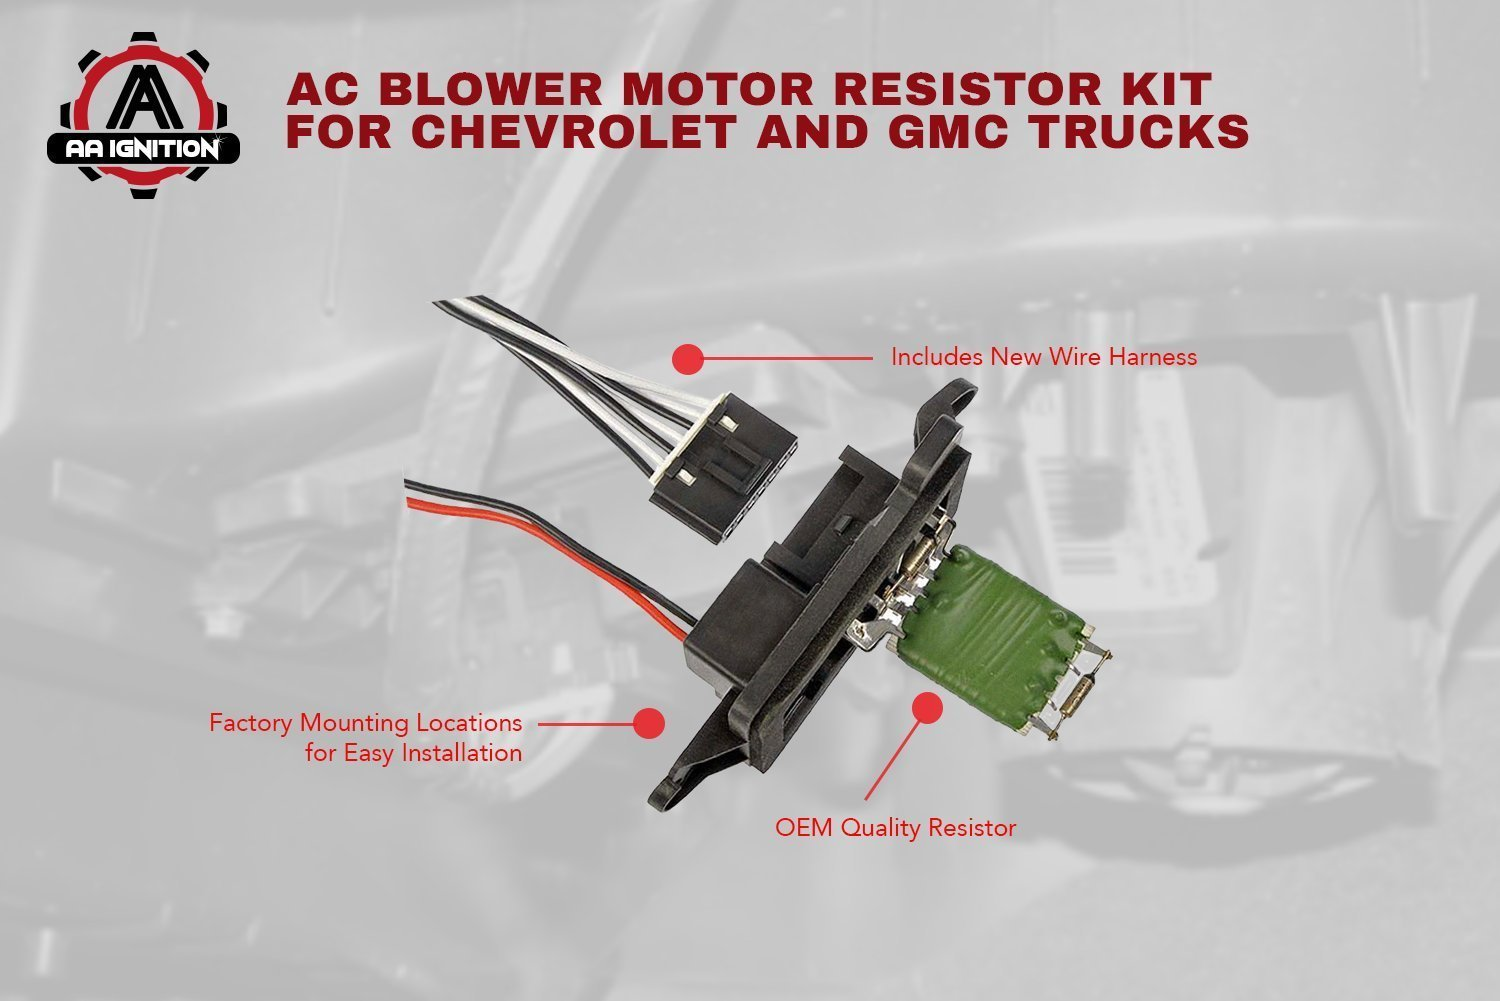 Ac Blower Motor Resistor Kit With Harness Replaces 2003 Gmc Yukon Denali Wiring 89019088 973 405 15 81086 22807123 Fits Chevy Silverado Tahoe Suburban Avalanche